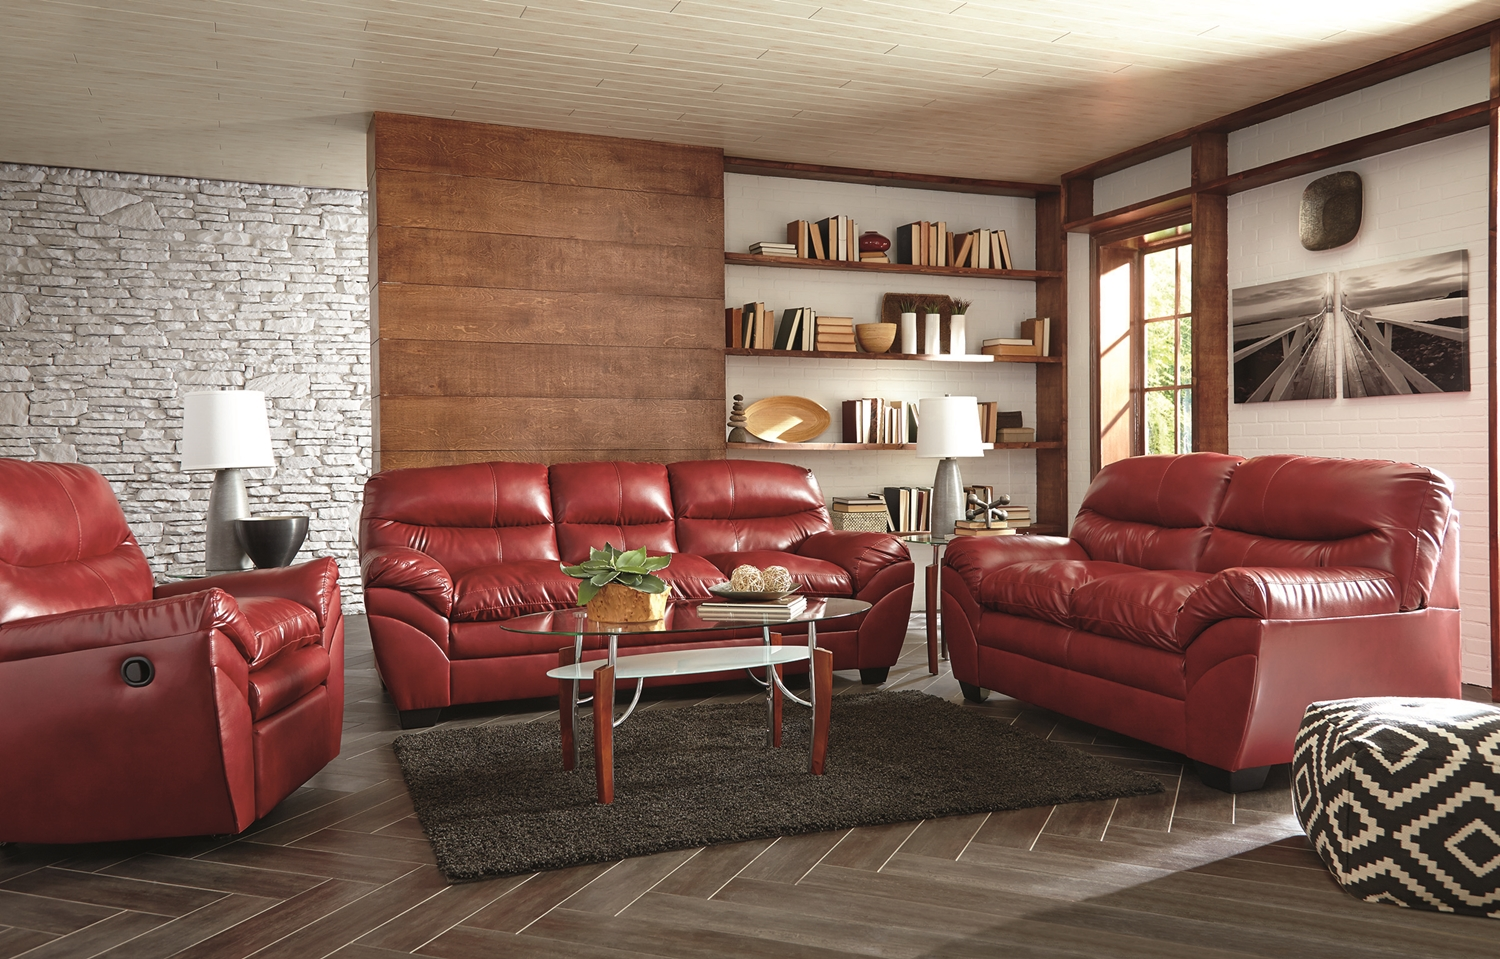 Living Room Furniture: Casual Contemporary Red Bonded Leather Sofa Set Living